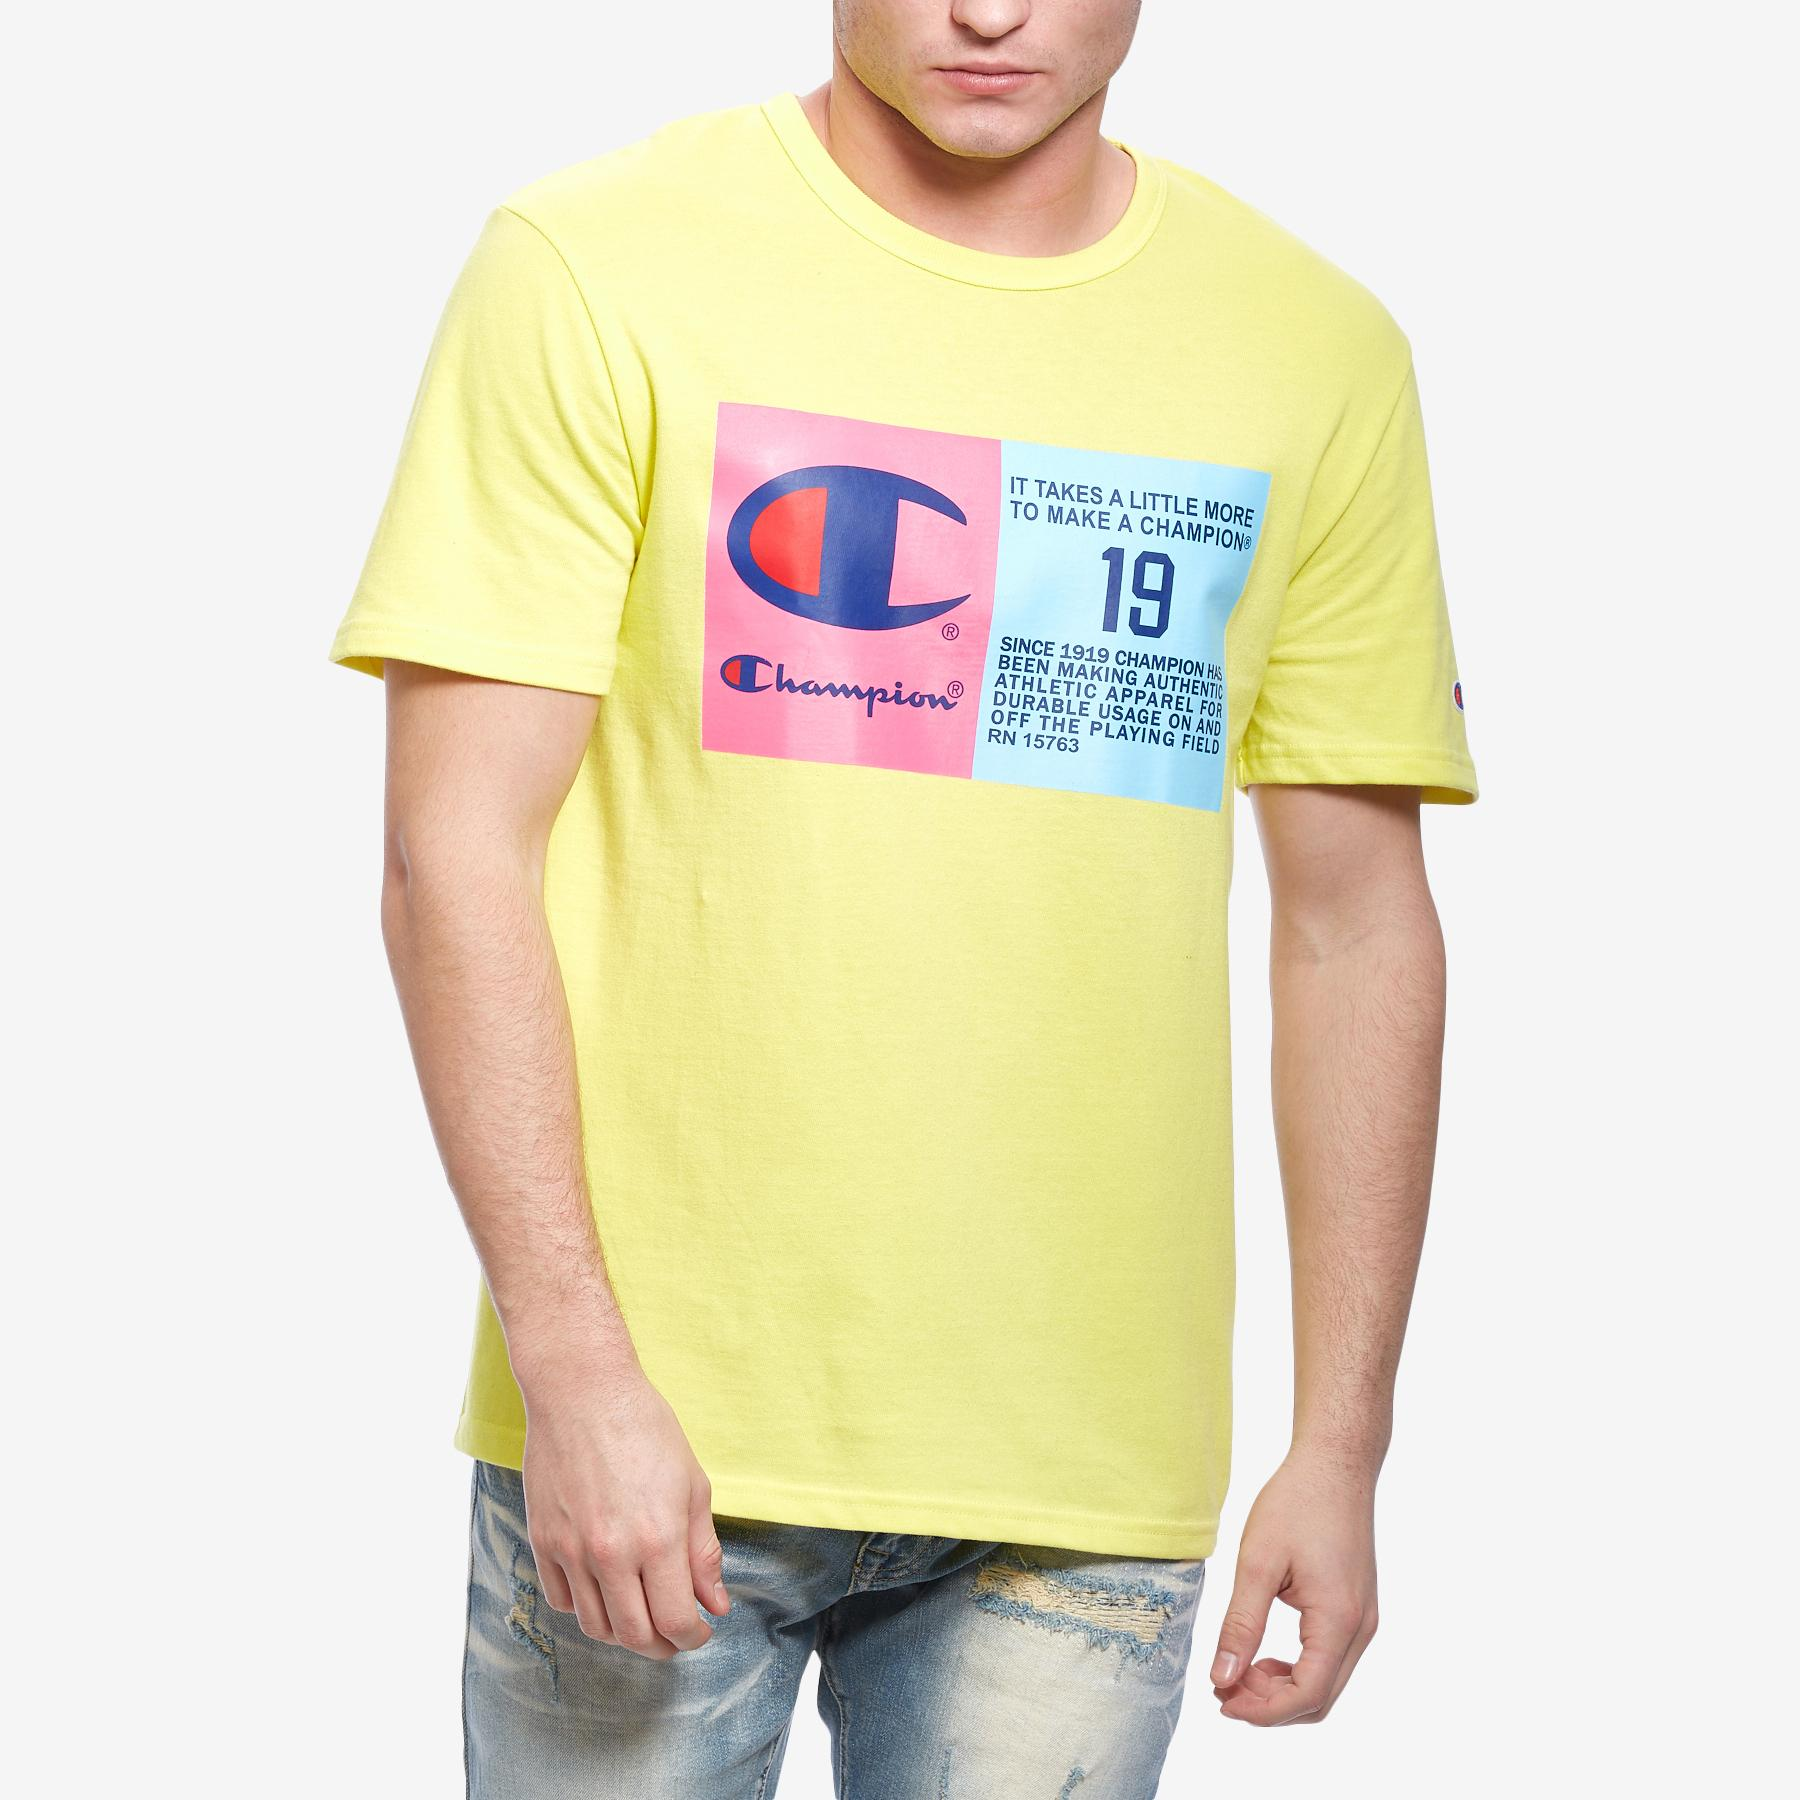 Men's Life   Heritage Tee, Pop Color Jock Tag